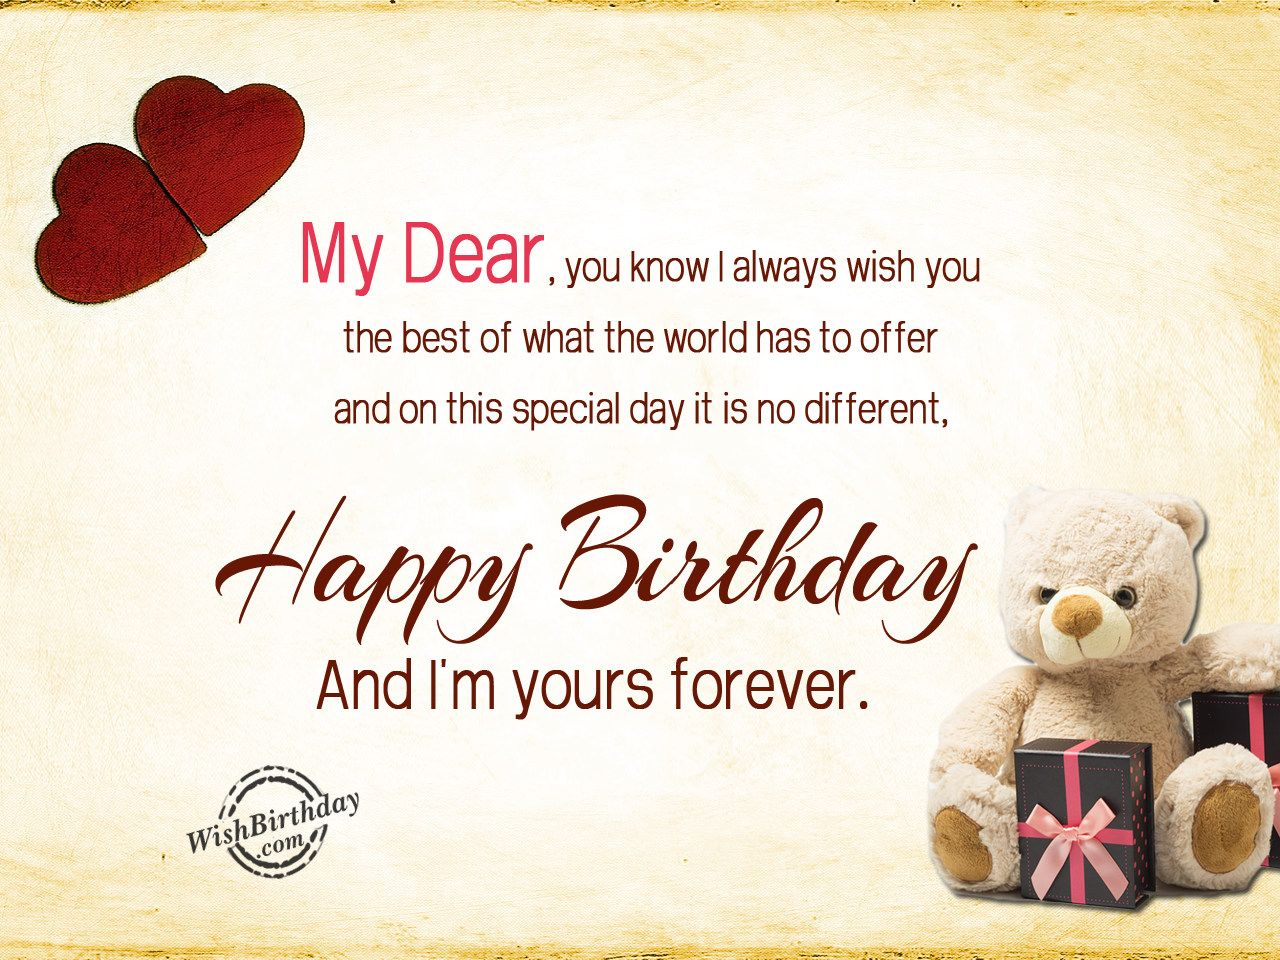 Happy birthday and i m yours forever wb0160288 bday pinterest happy birthday wishes for friends must read part com friend wishing you very dear best free home design idea inspiration kristyandbryce Image collections